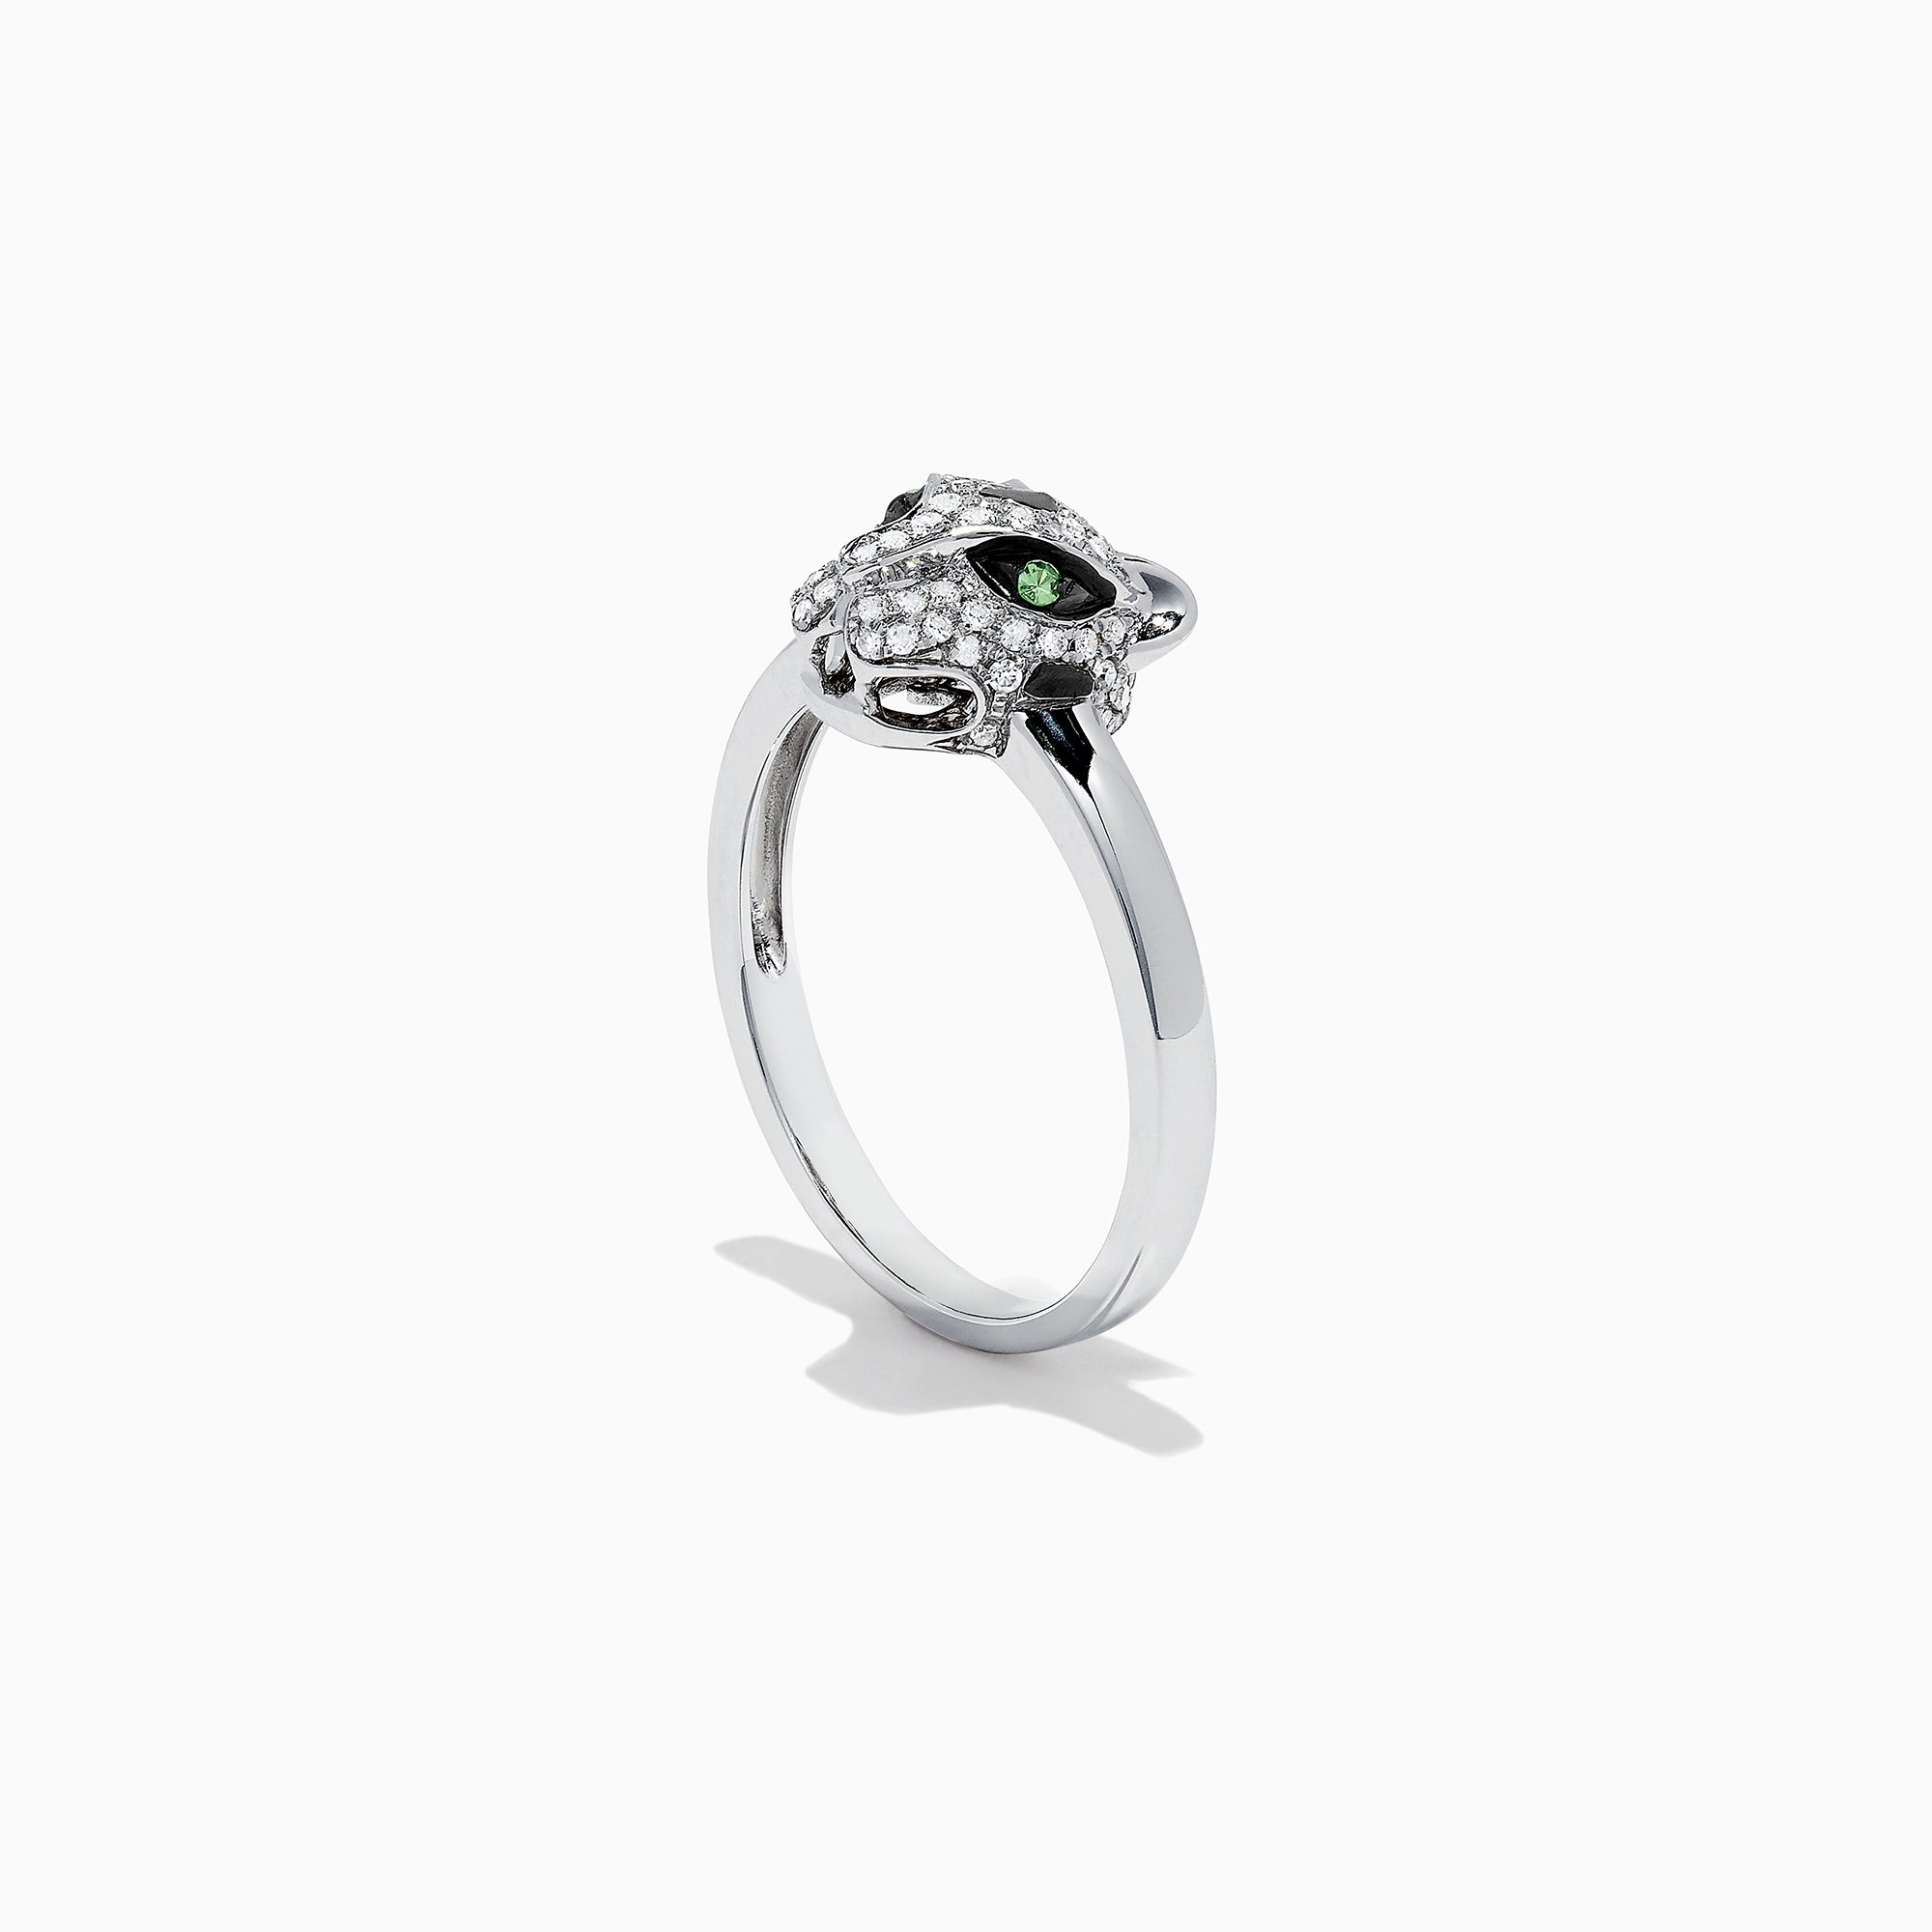 Effy Signature 14K White Gold Diamond and Tsavorite Panther Ring, 0.25 TCW